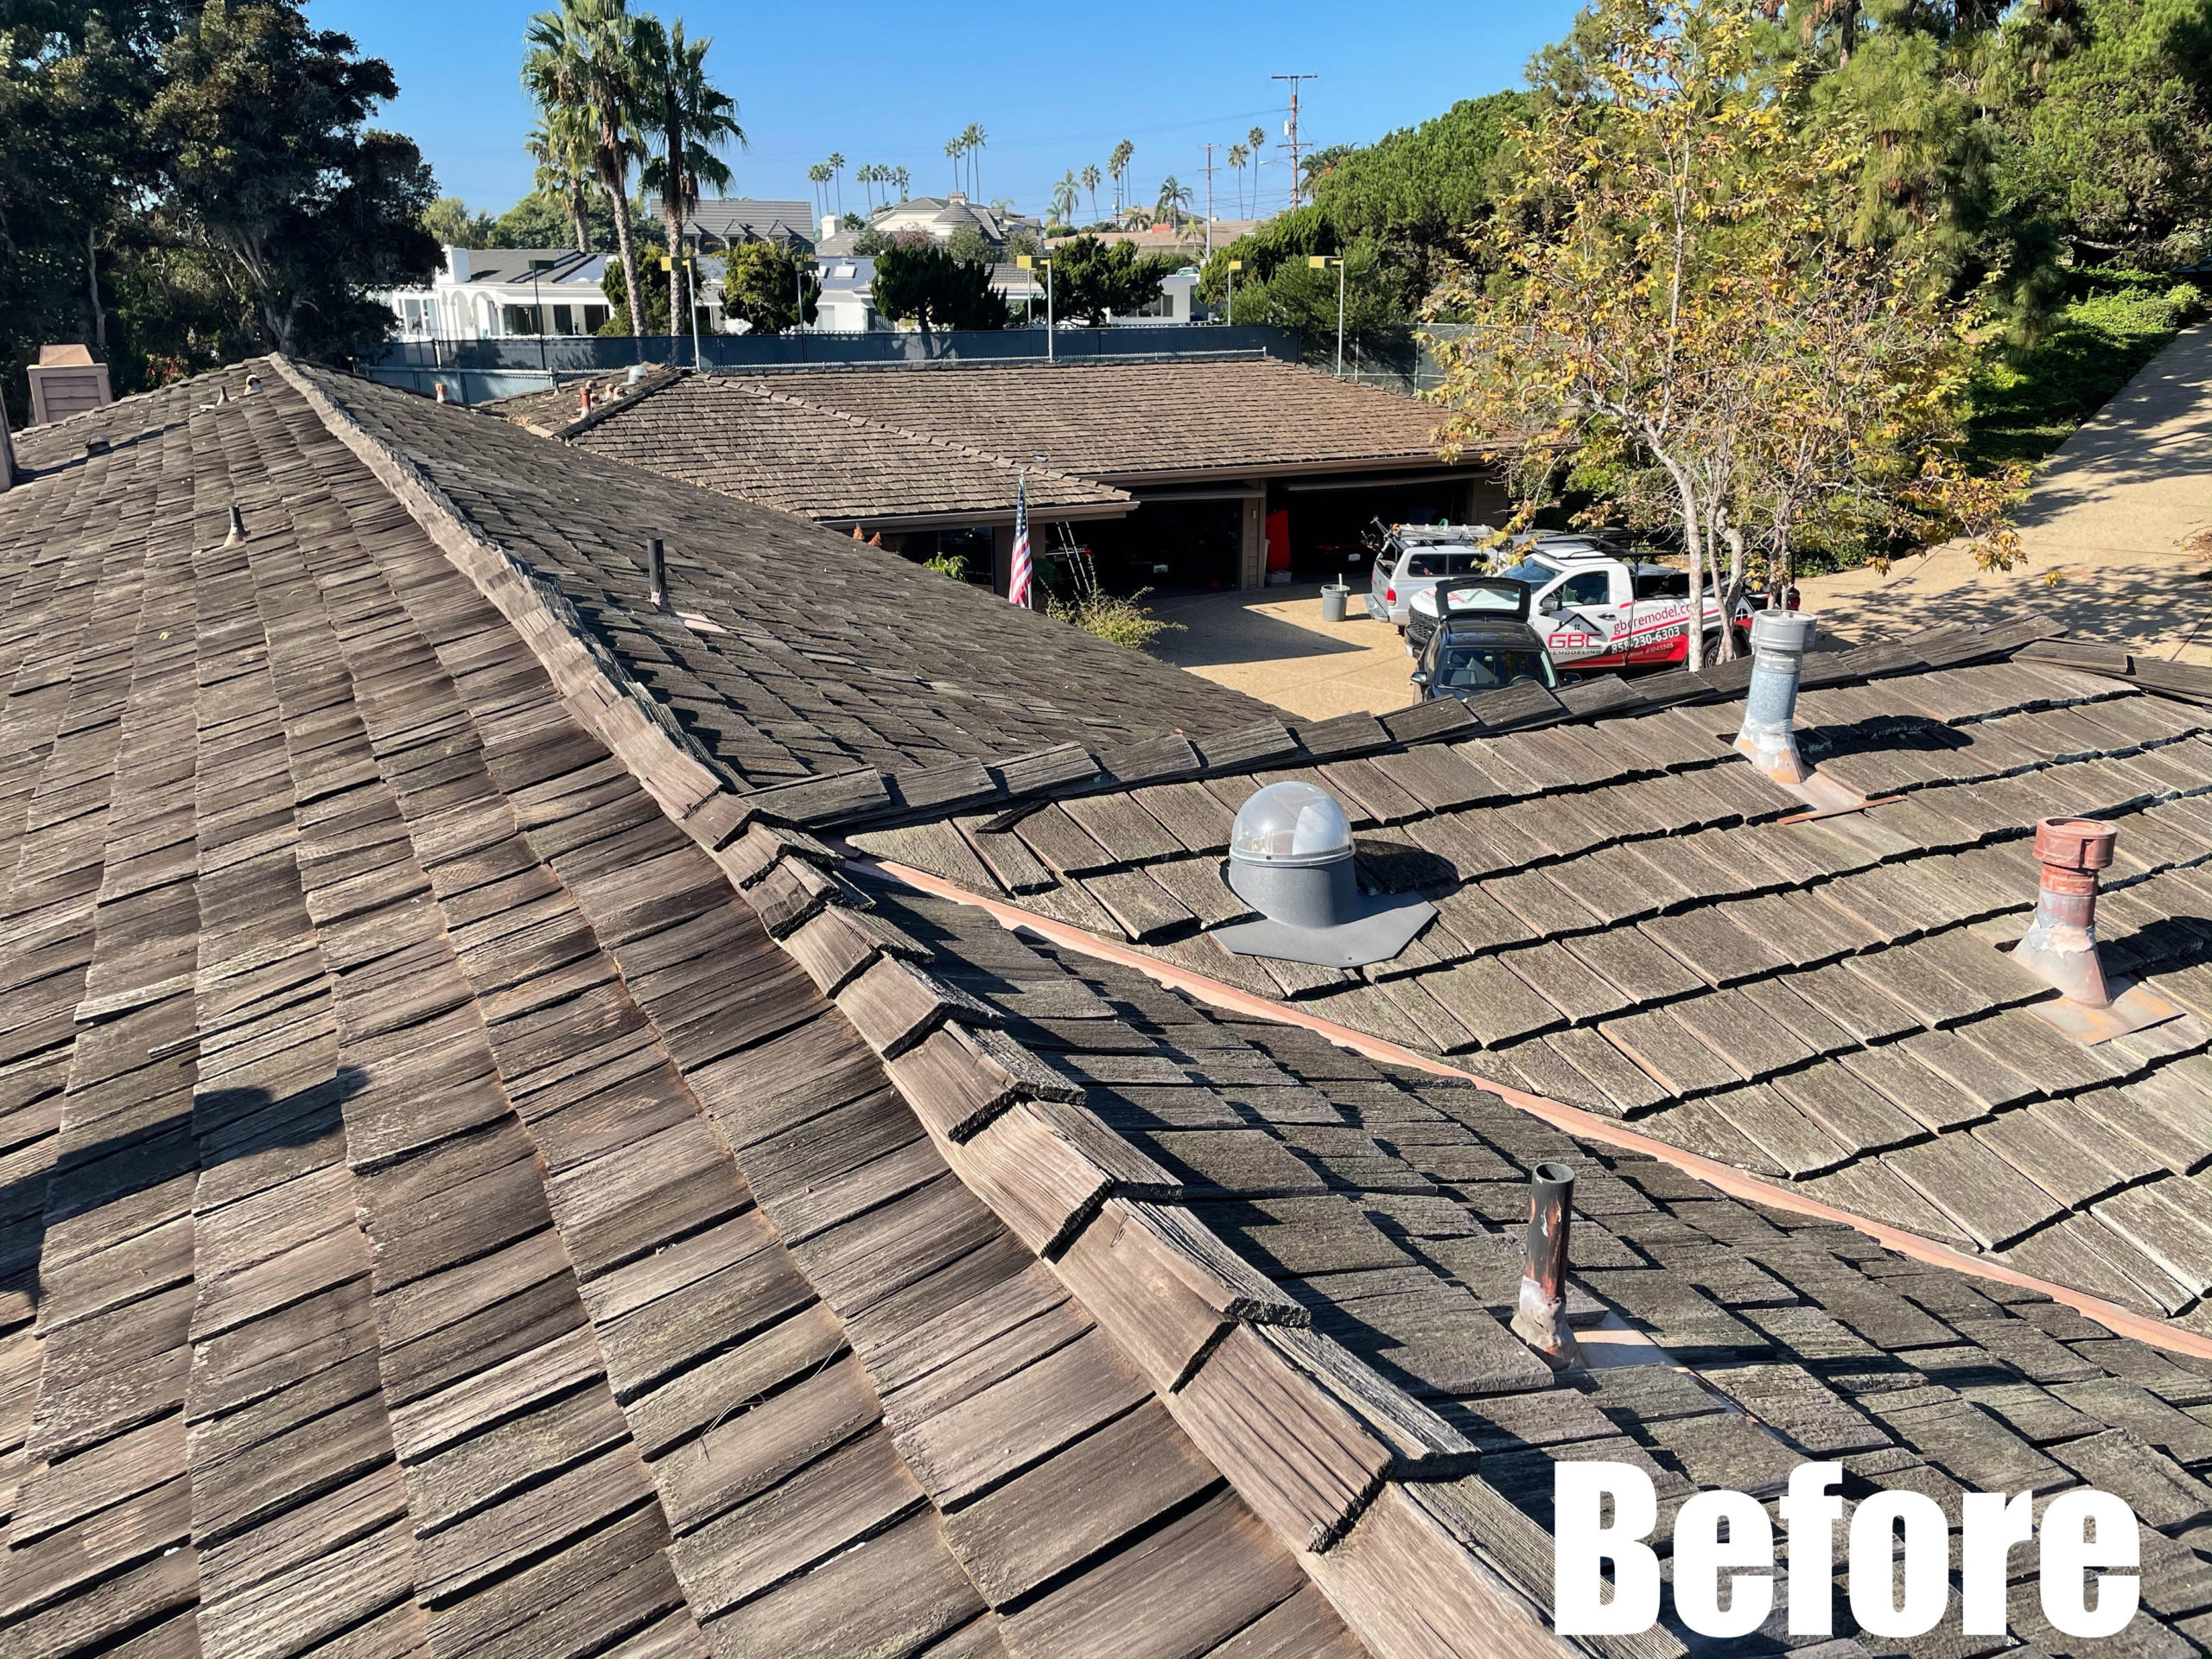 tile roof-Recovered-Recovered-Recovered